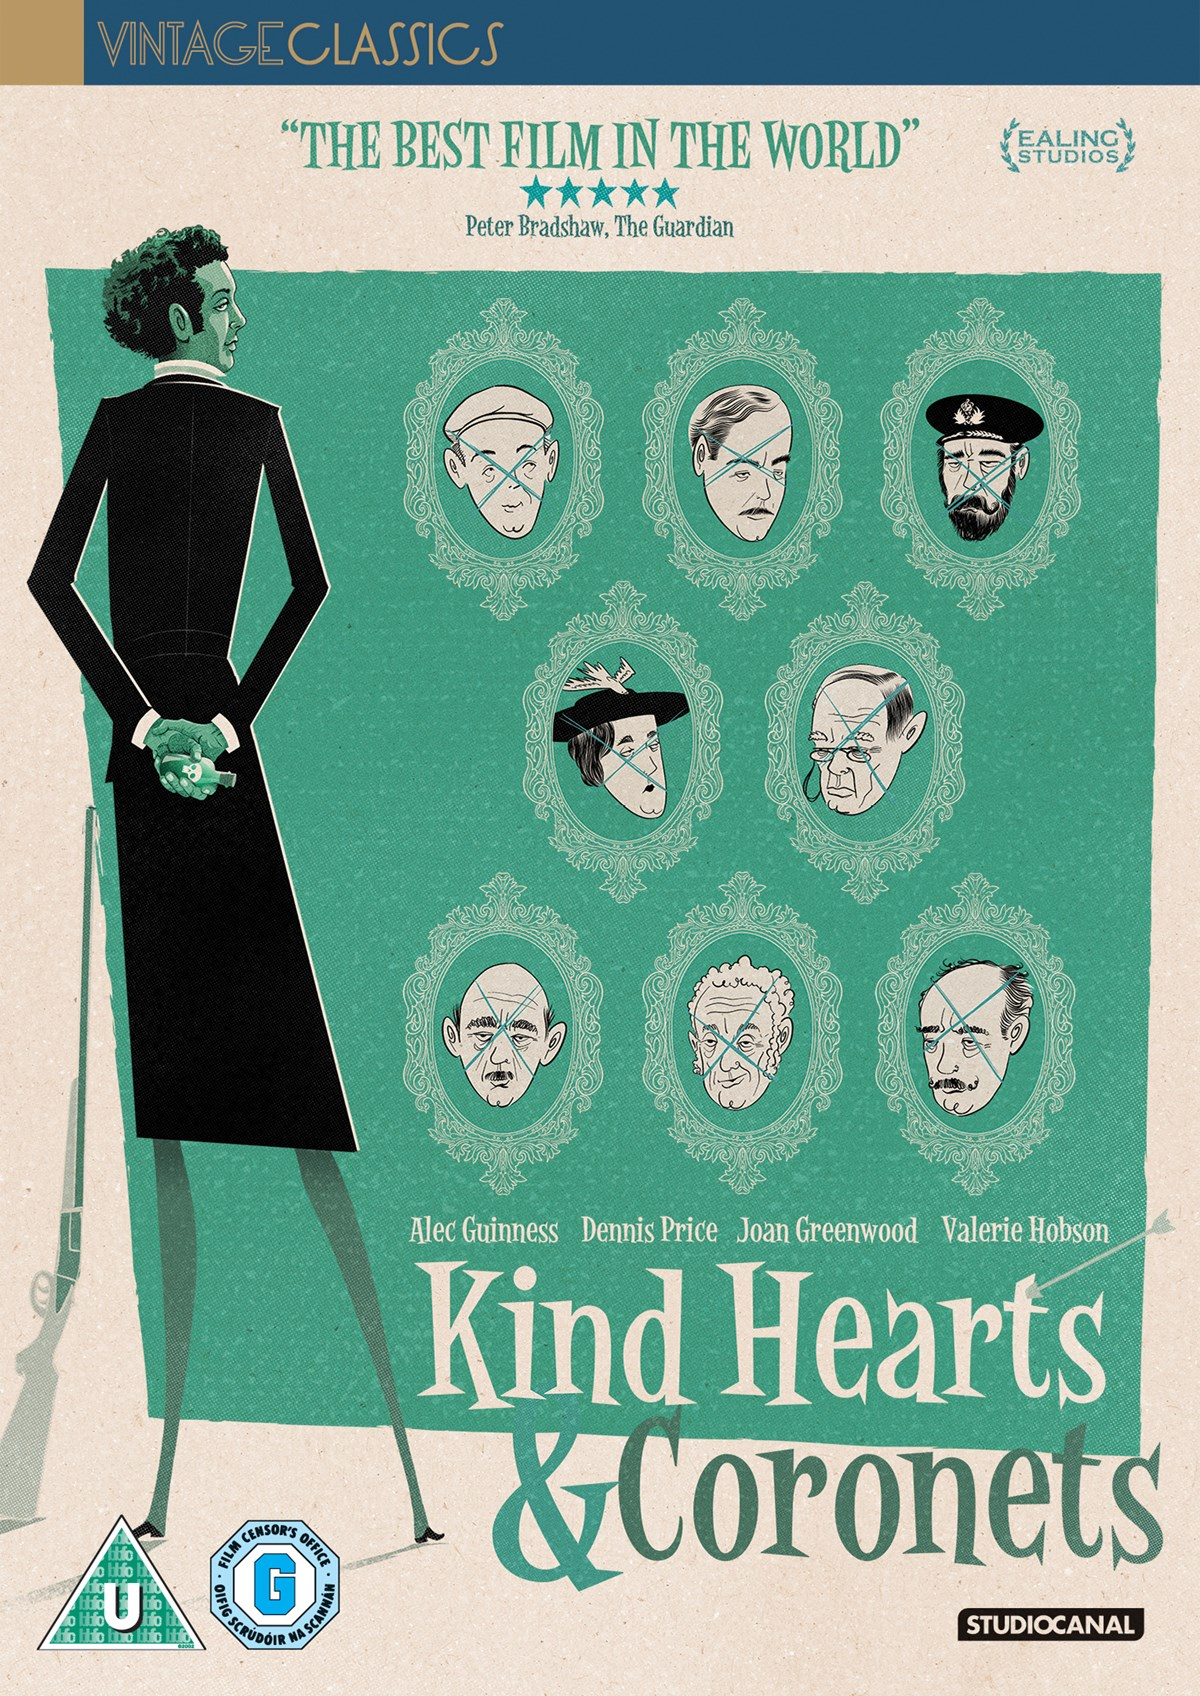 Buy Kind Hearts & Coronets (70th Anniversary Dual Format Collector's Edition)